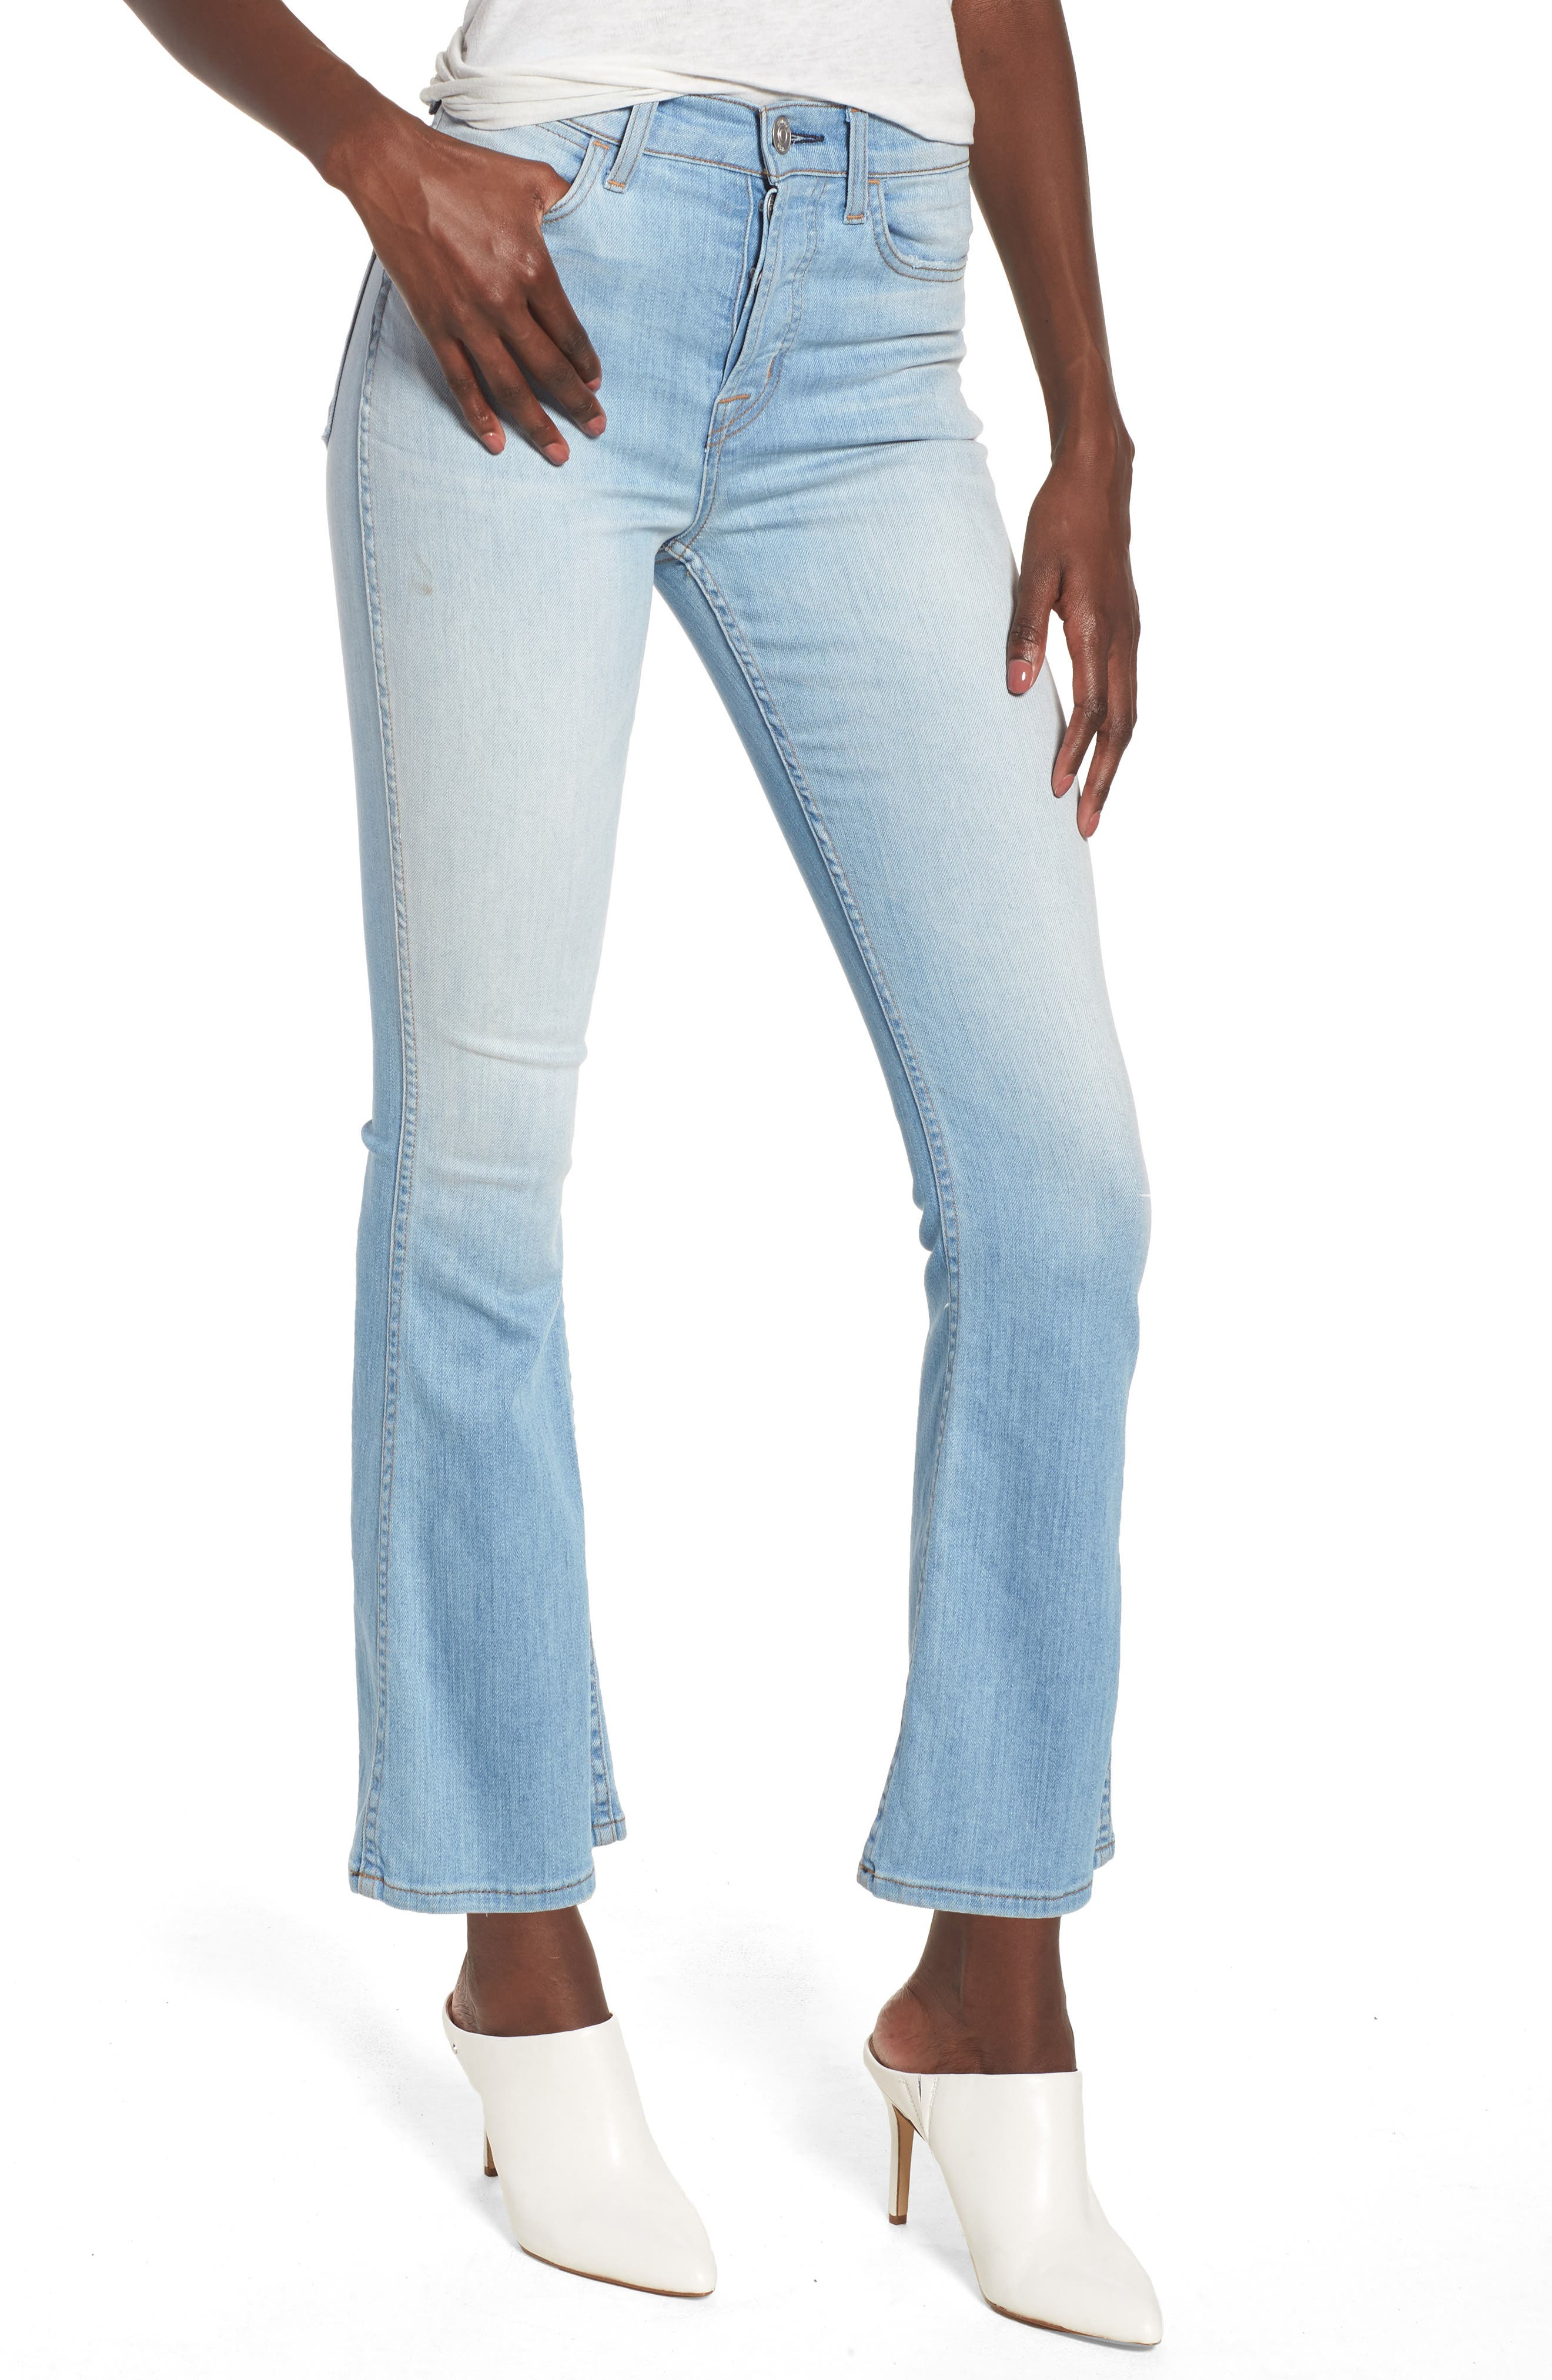 Holly High Waist Crop Flare Jeans,                             Main thumbnail 1, color,                             457